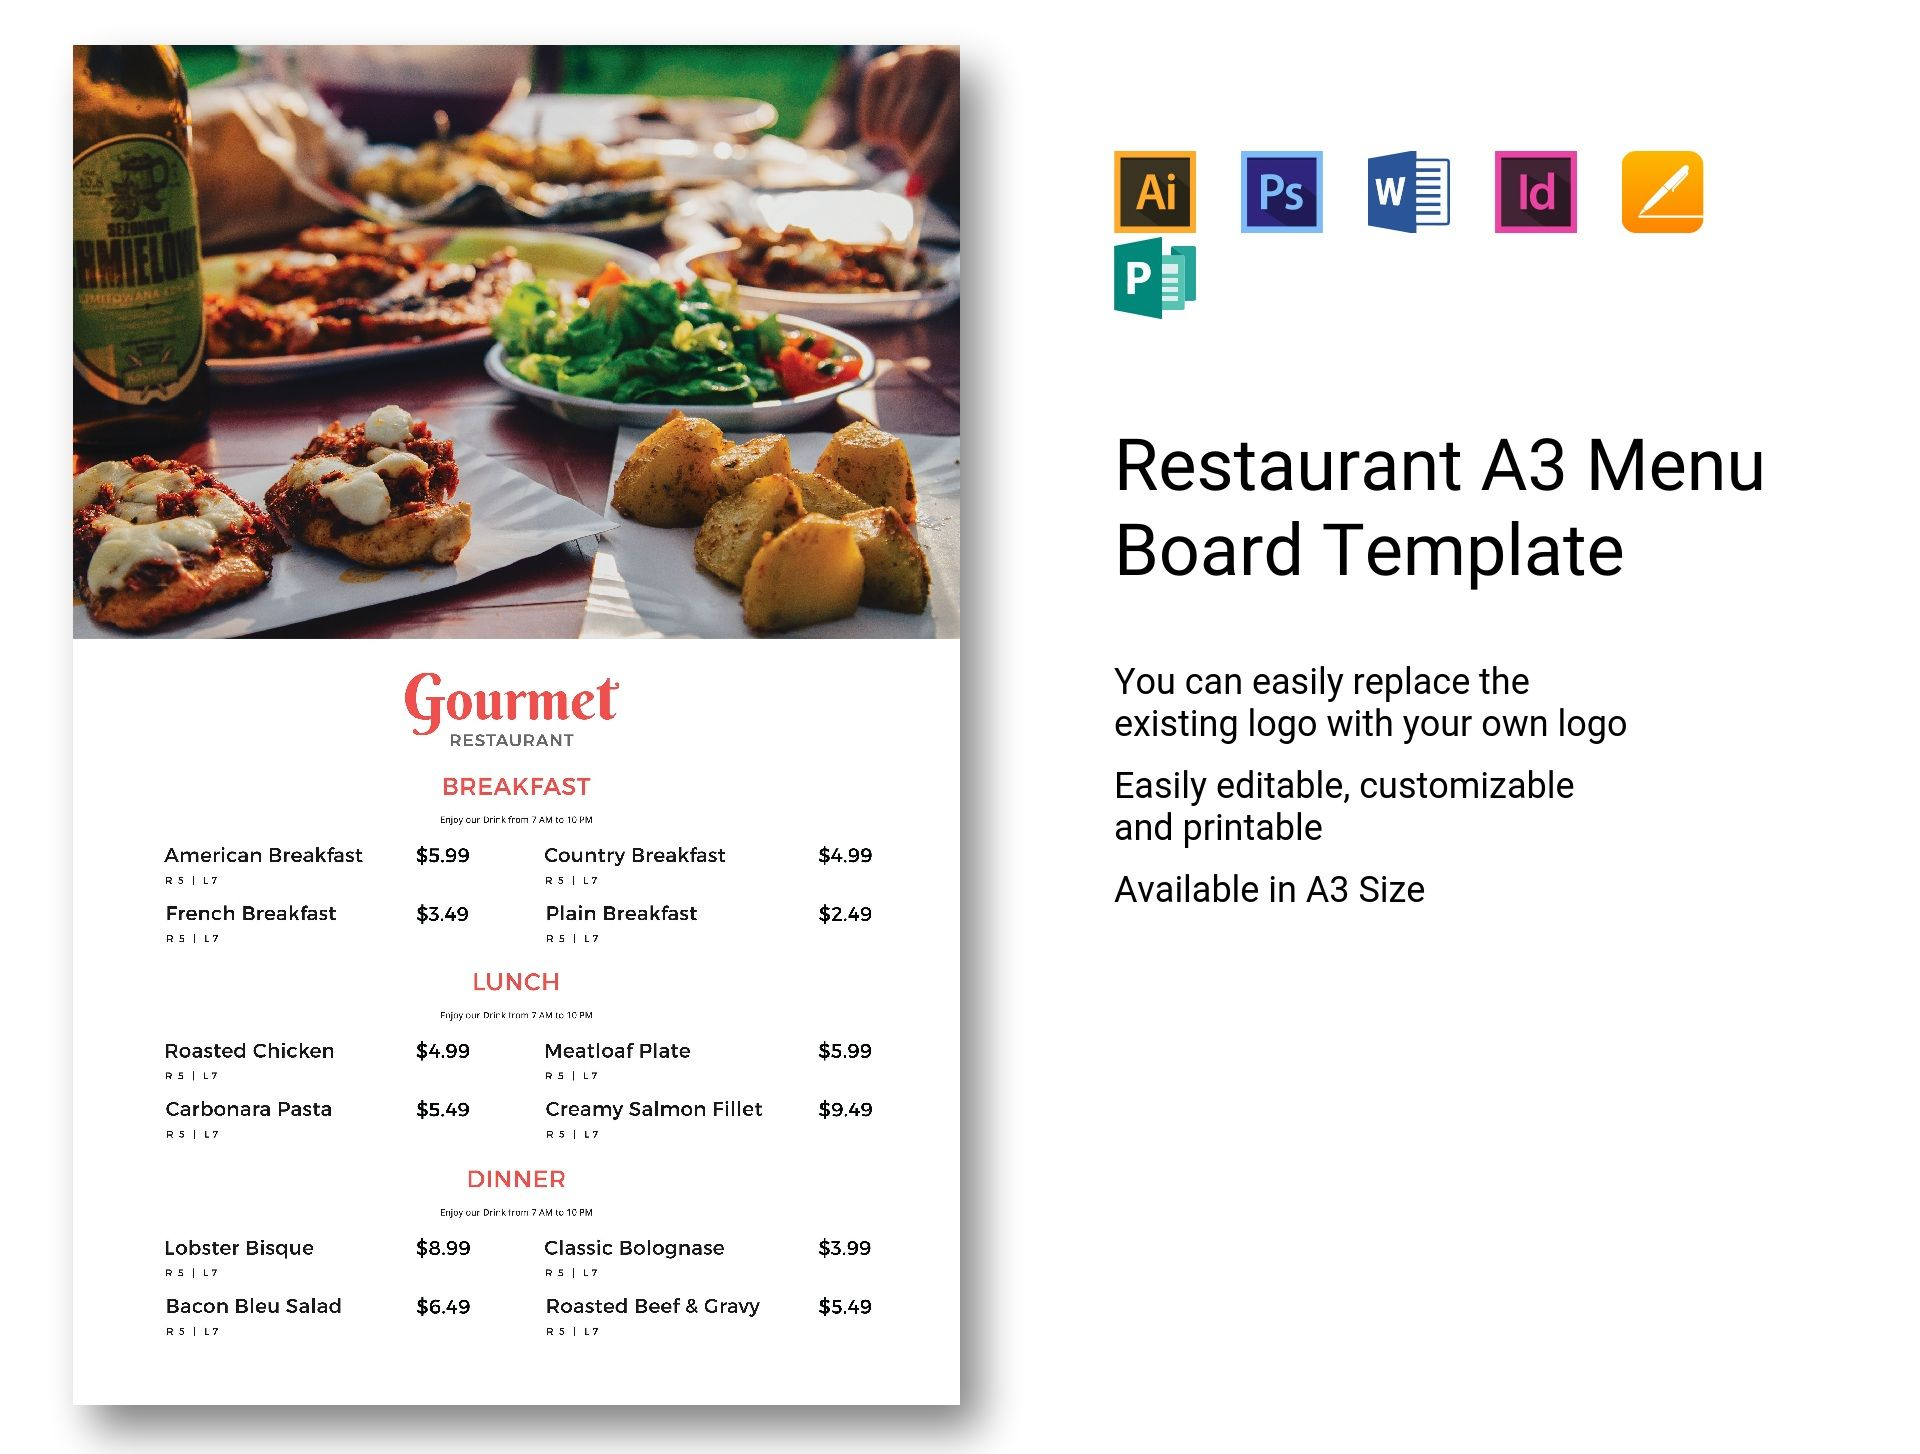 Restaurant A3 Menu Board Template